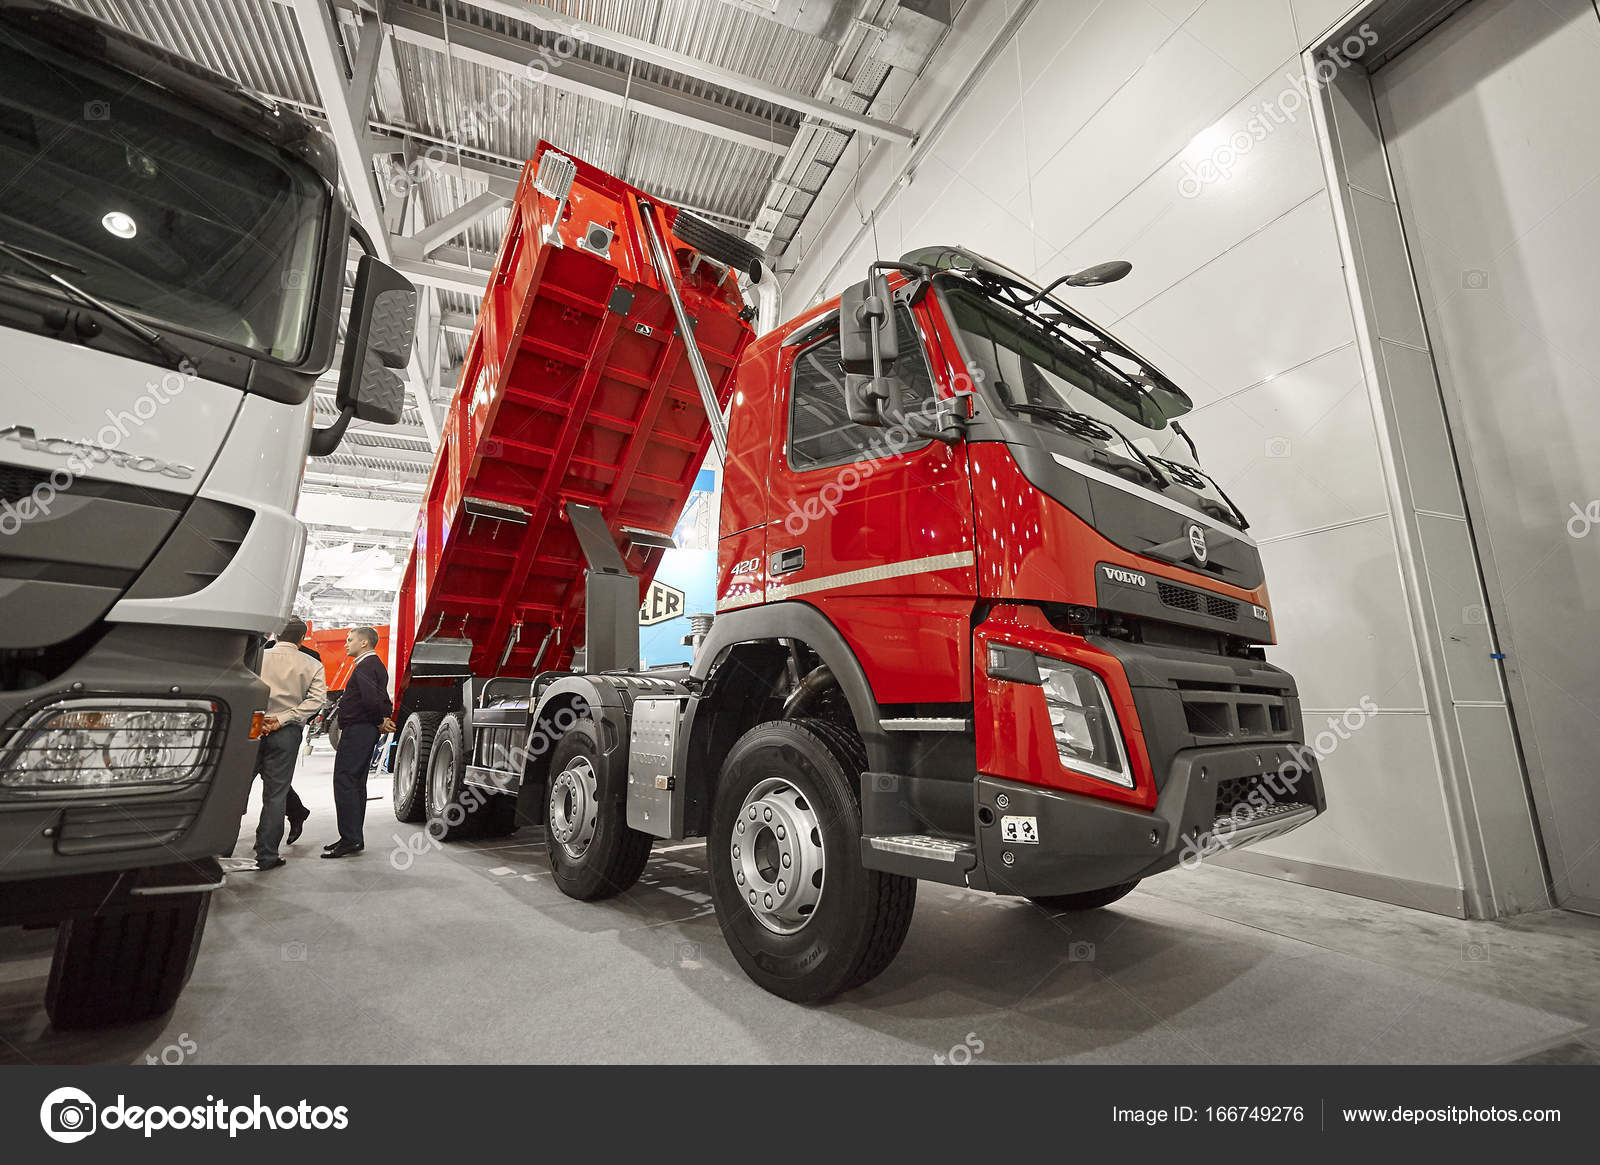 Volvo Exhibition Stand : Moscow sep view on volvo dump truck exhibit on